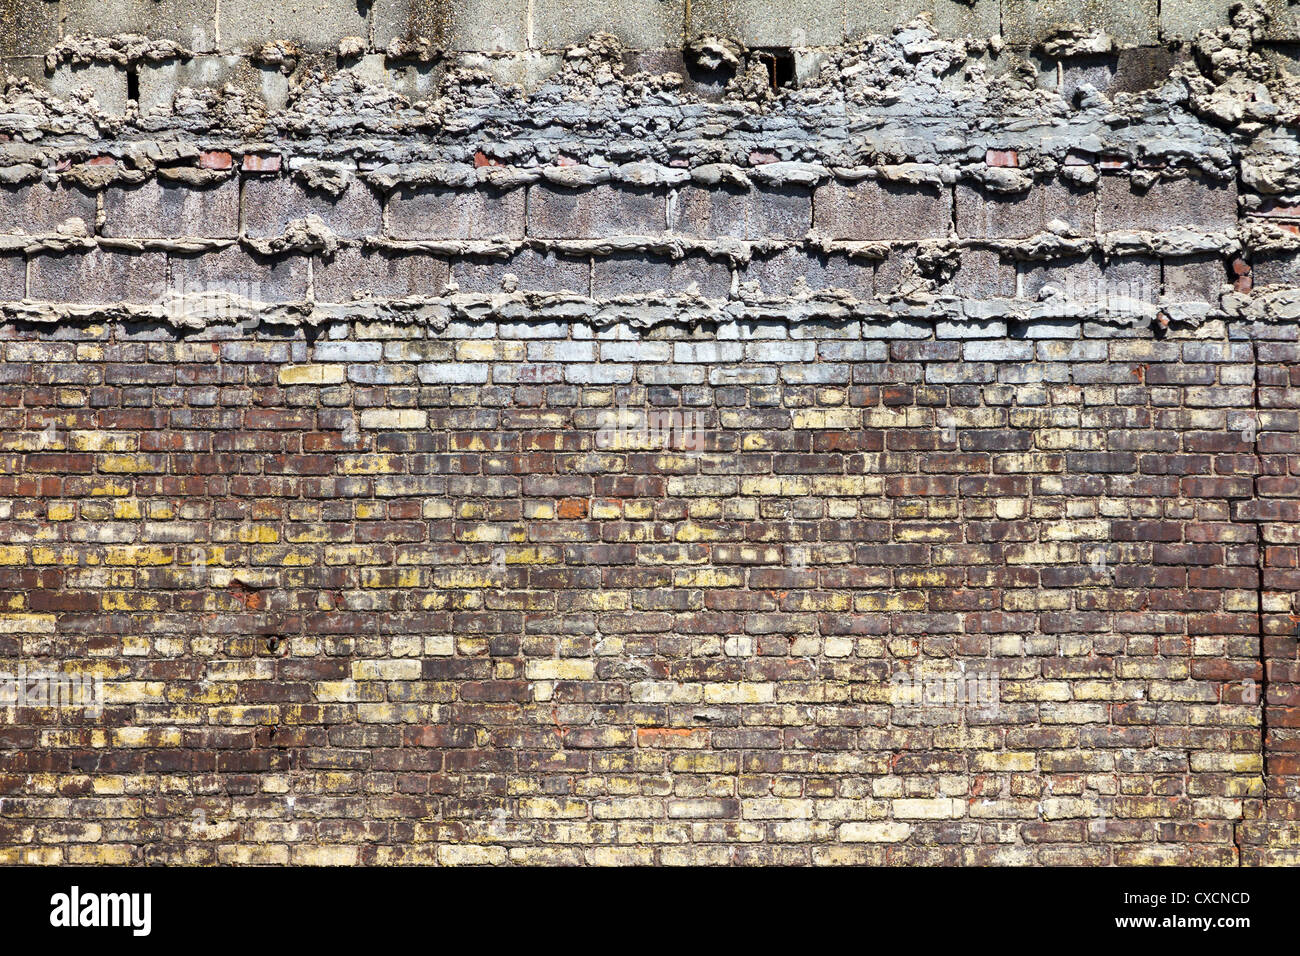 Old Grungy Brick Background Texture - Stock Image